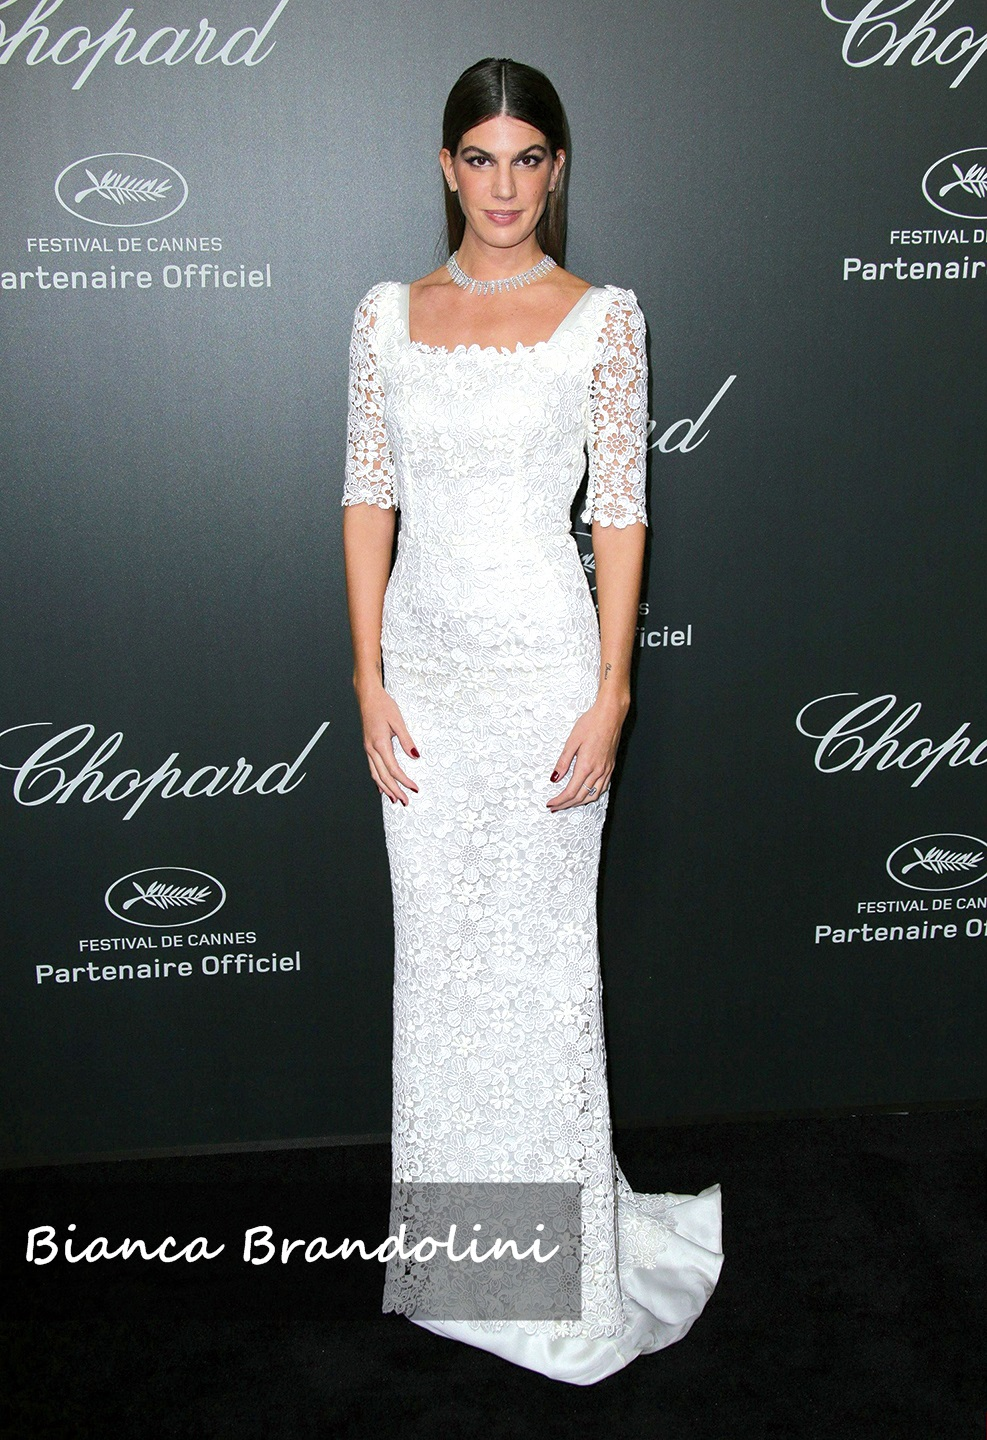 Chopard Gala, 67th Cannes Film Festival, France - 19 May 2014